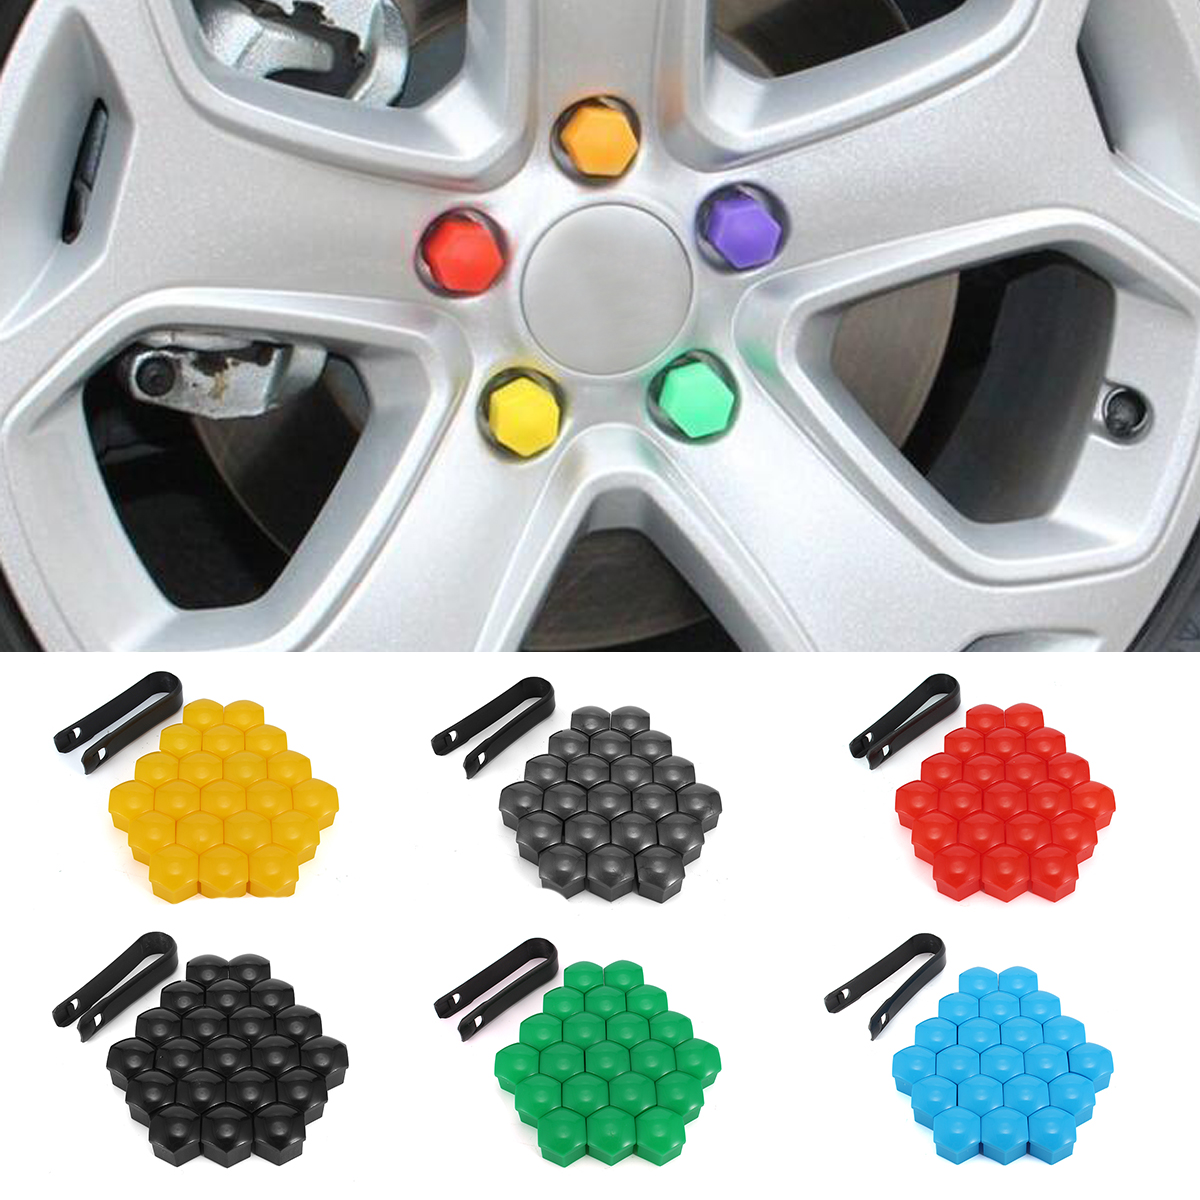 20pcs 17mm Car Wheels Plastic Nuts Screw Cap Removal Tools For AUDI VW